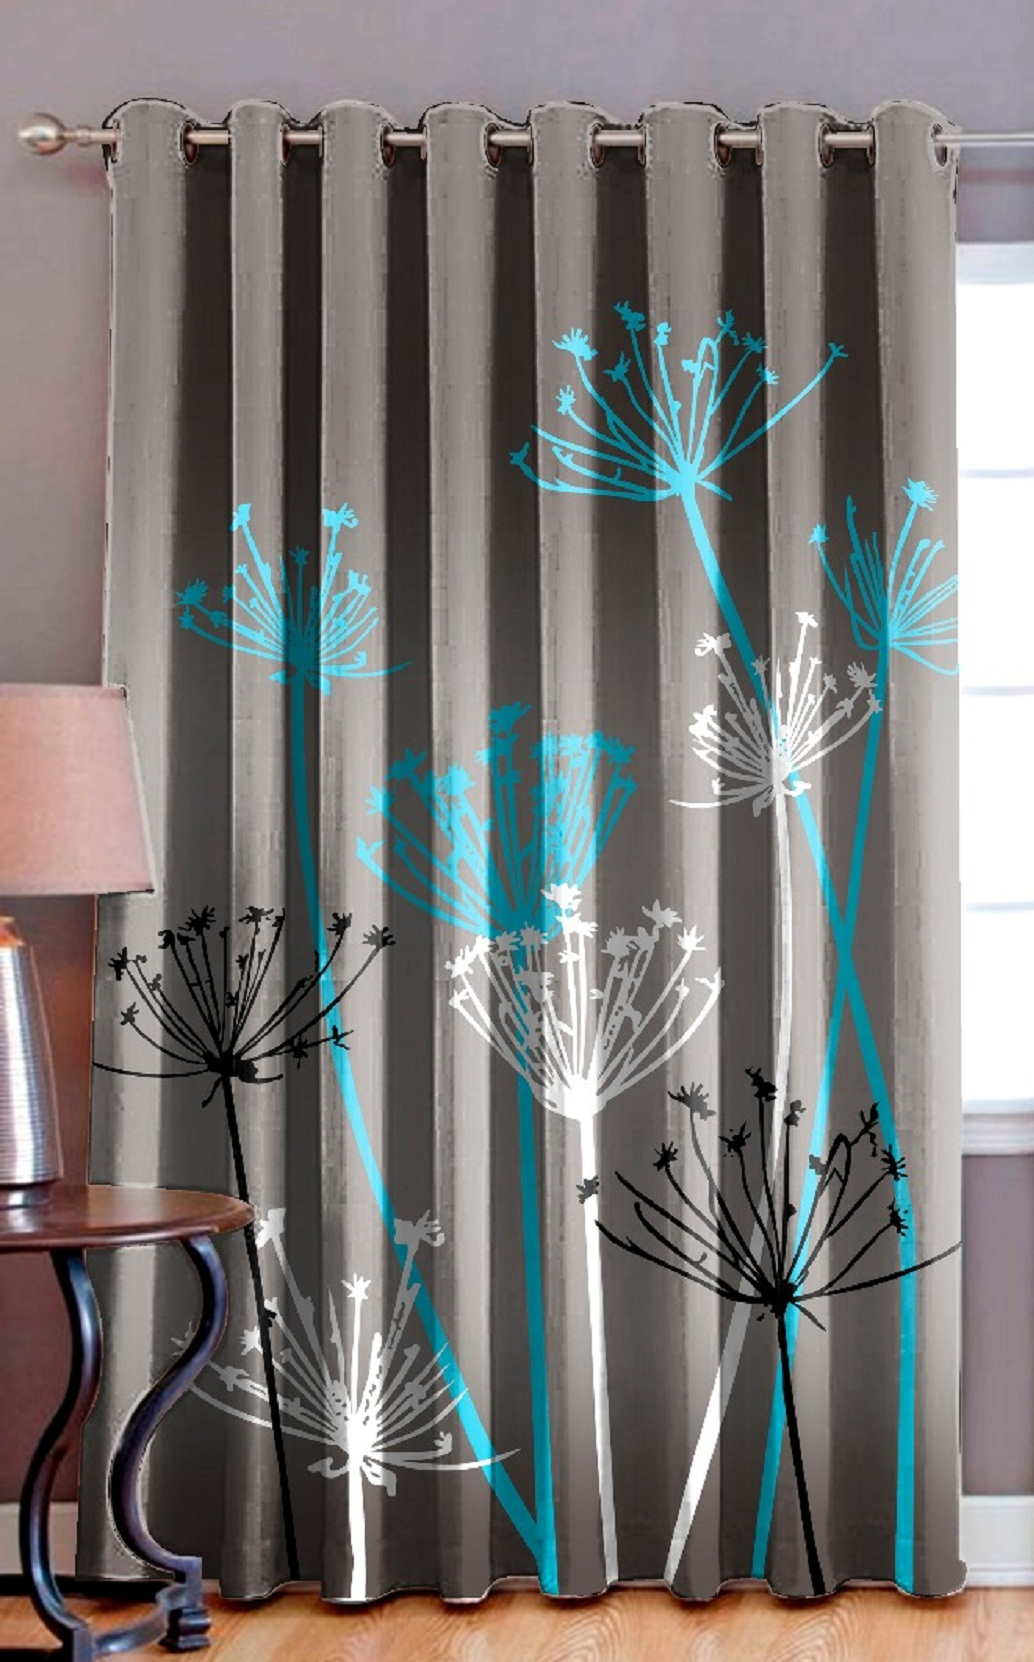 AKR CREATION Heavy long crush door size Curtain 213 cm (7 ft) Single Piece